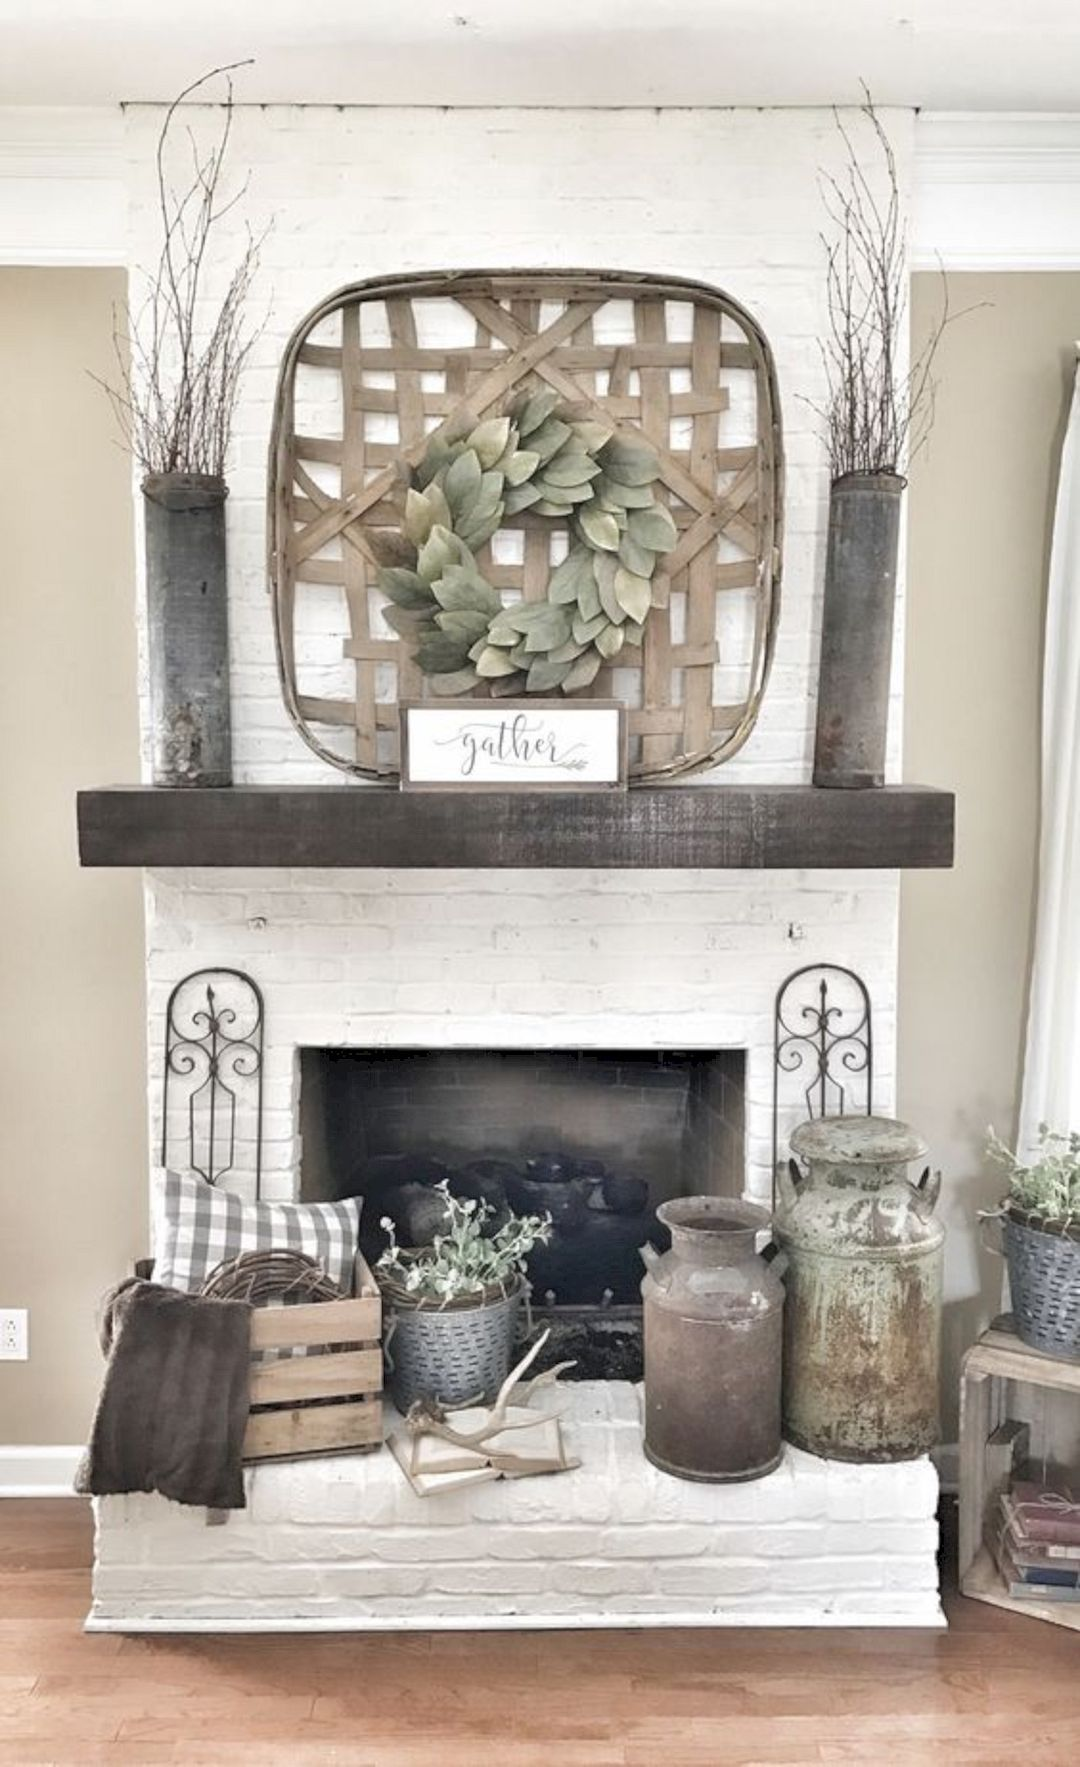 16 Gorgeous Mantels Decorating Ideas | Gorgeous Interior Ideas ... on french kitchen countertops, french rustic bathroom, french rustic interiors, french country kitchen ideas, french rustic doors, french rustic range hoods, french kitchen design ideas, french themed kitchen ideas, french country kitchen color palette, french bedroom, french kitchen remodeling ideas, french rustic lighting, french dining room, french rustic furniture, french kitchen cabinets, french white kitchen ideas, french rustic curtains, french rustic design, french rustic decor, french rustic style,